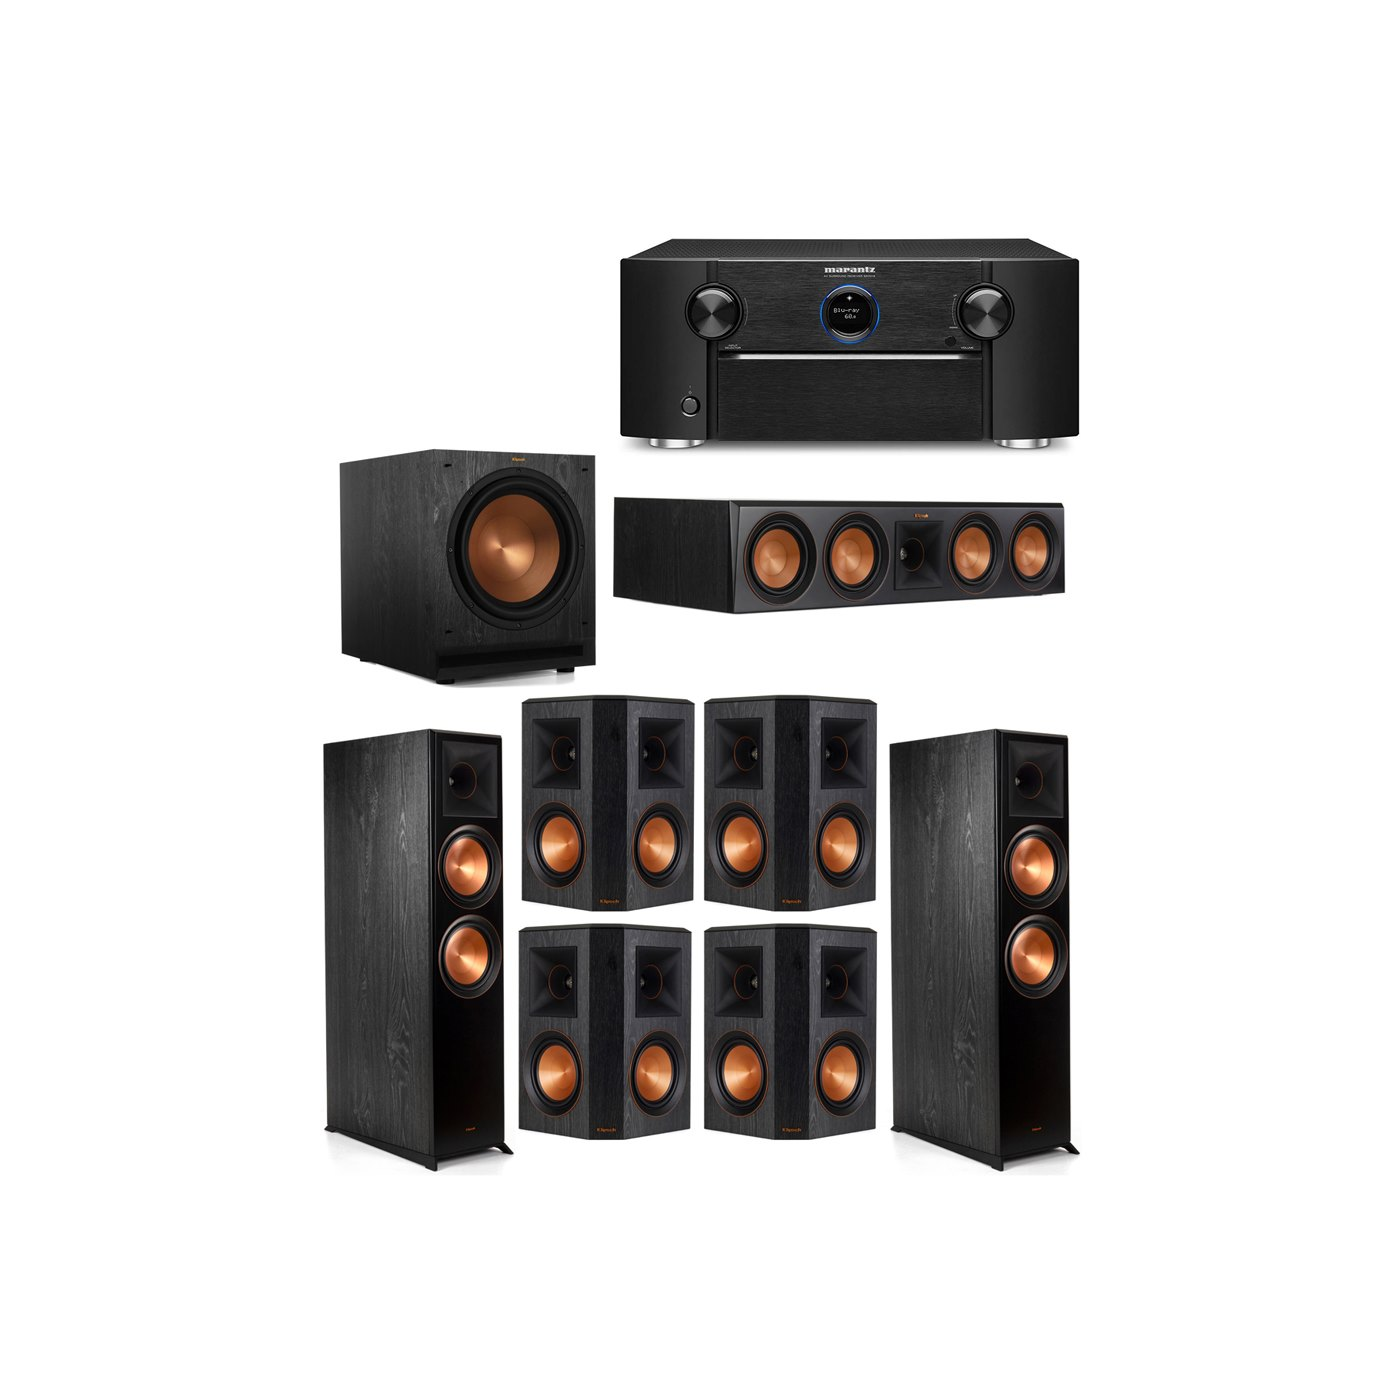 Klipsch 7.1 System with 2 RP-8000F Floorstanding Speakers, 1 Klipsch RP-504C Center Speaker, 4 Klipsch RP-502S Surround Speakers, 1 Klipsch SPL-120 Subwoofer, 1 Marantz SR7012 A/V Receiver